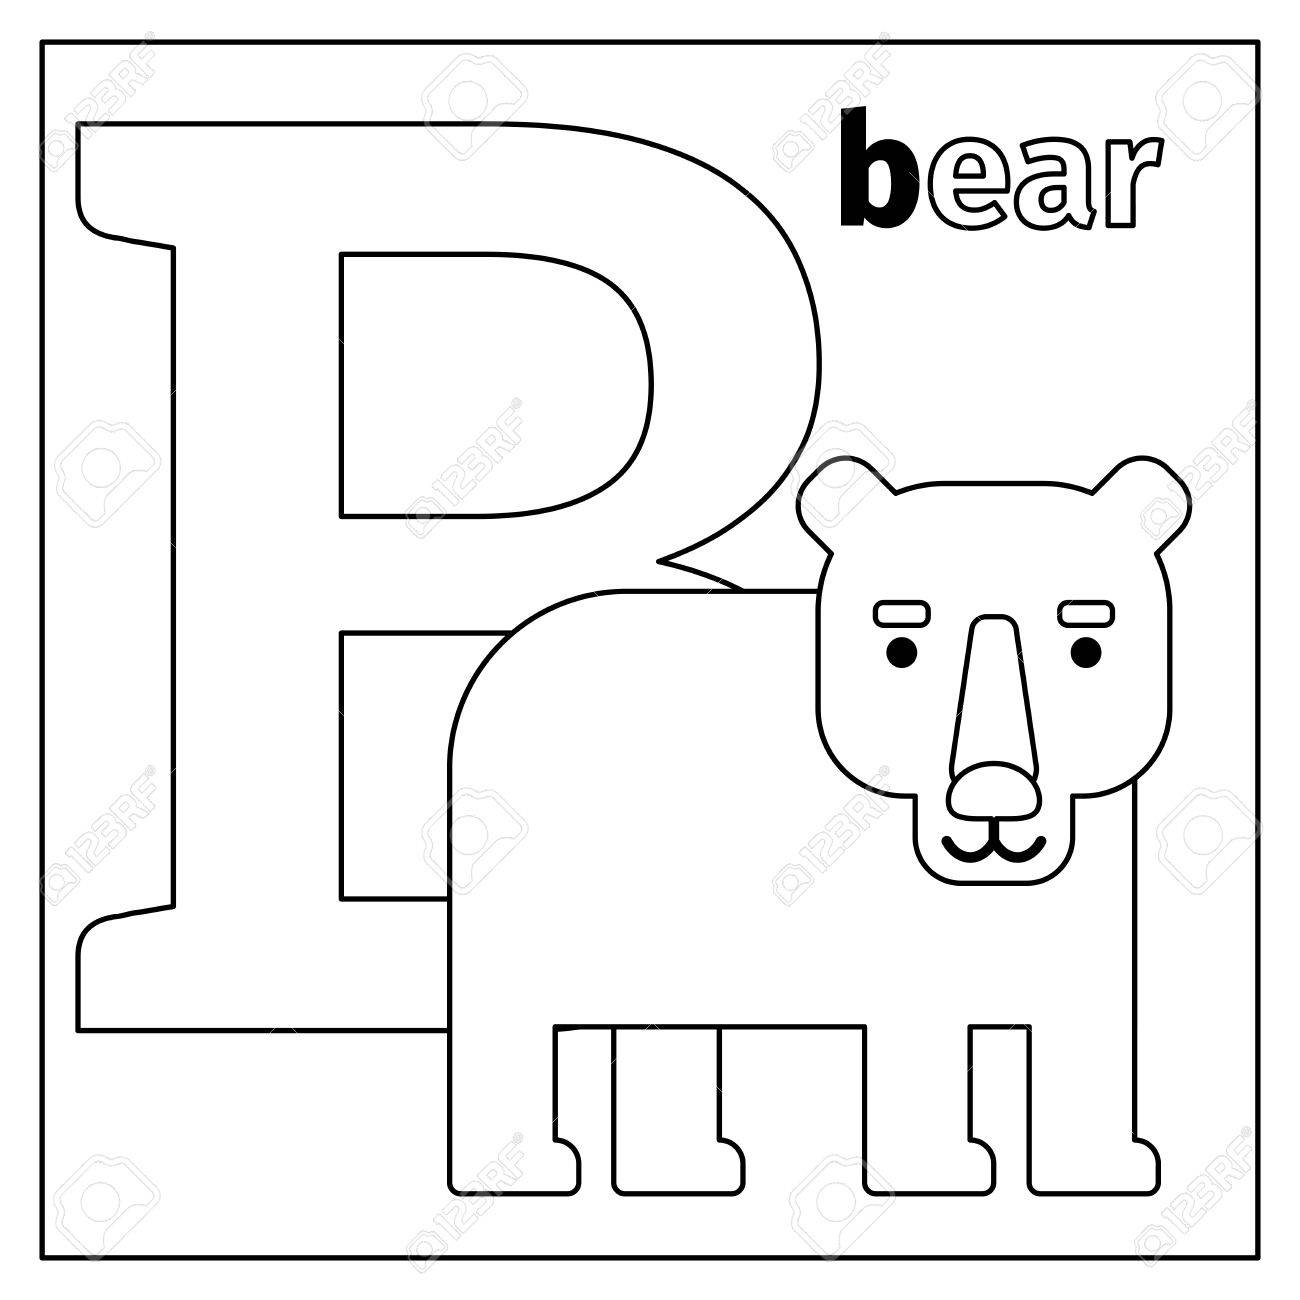 Coloring Page Or Card For Kids With English Animals Zoo Alphabet Bear Letter B